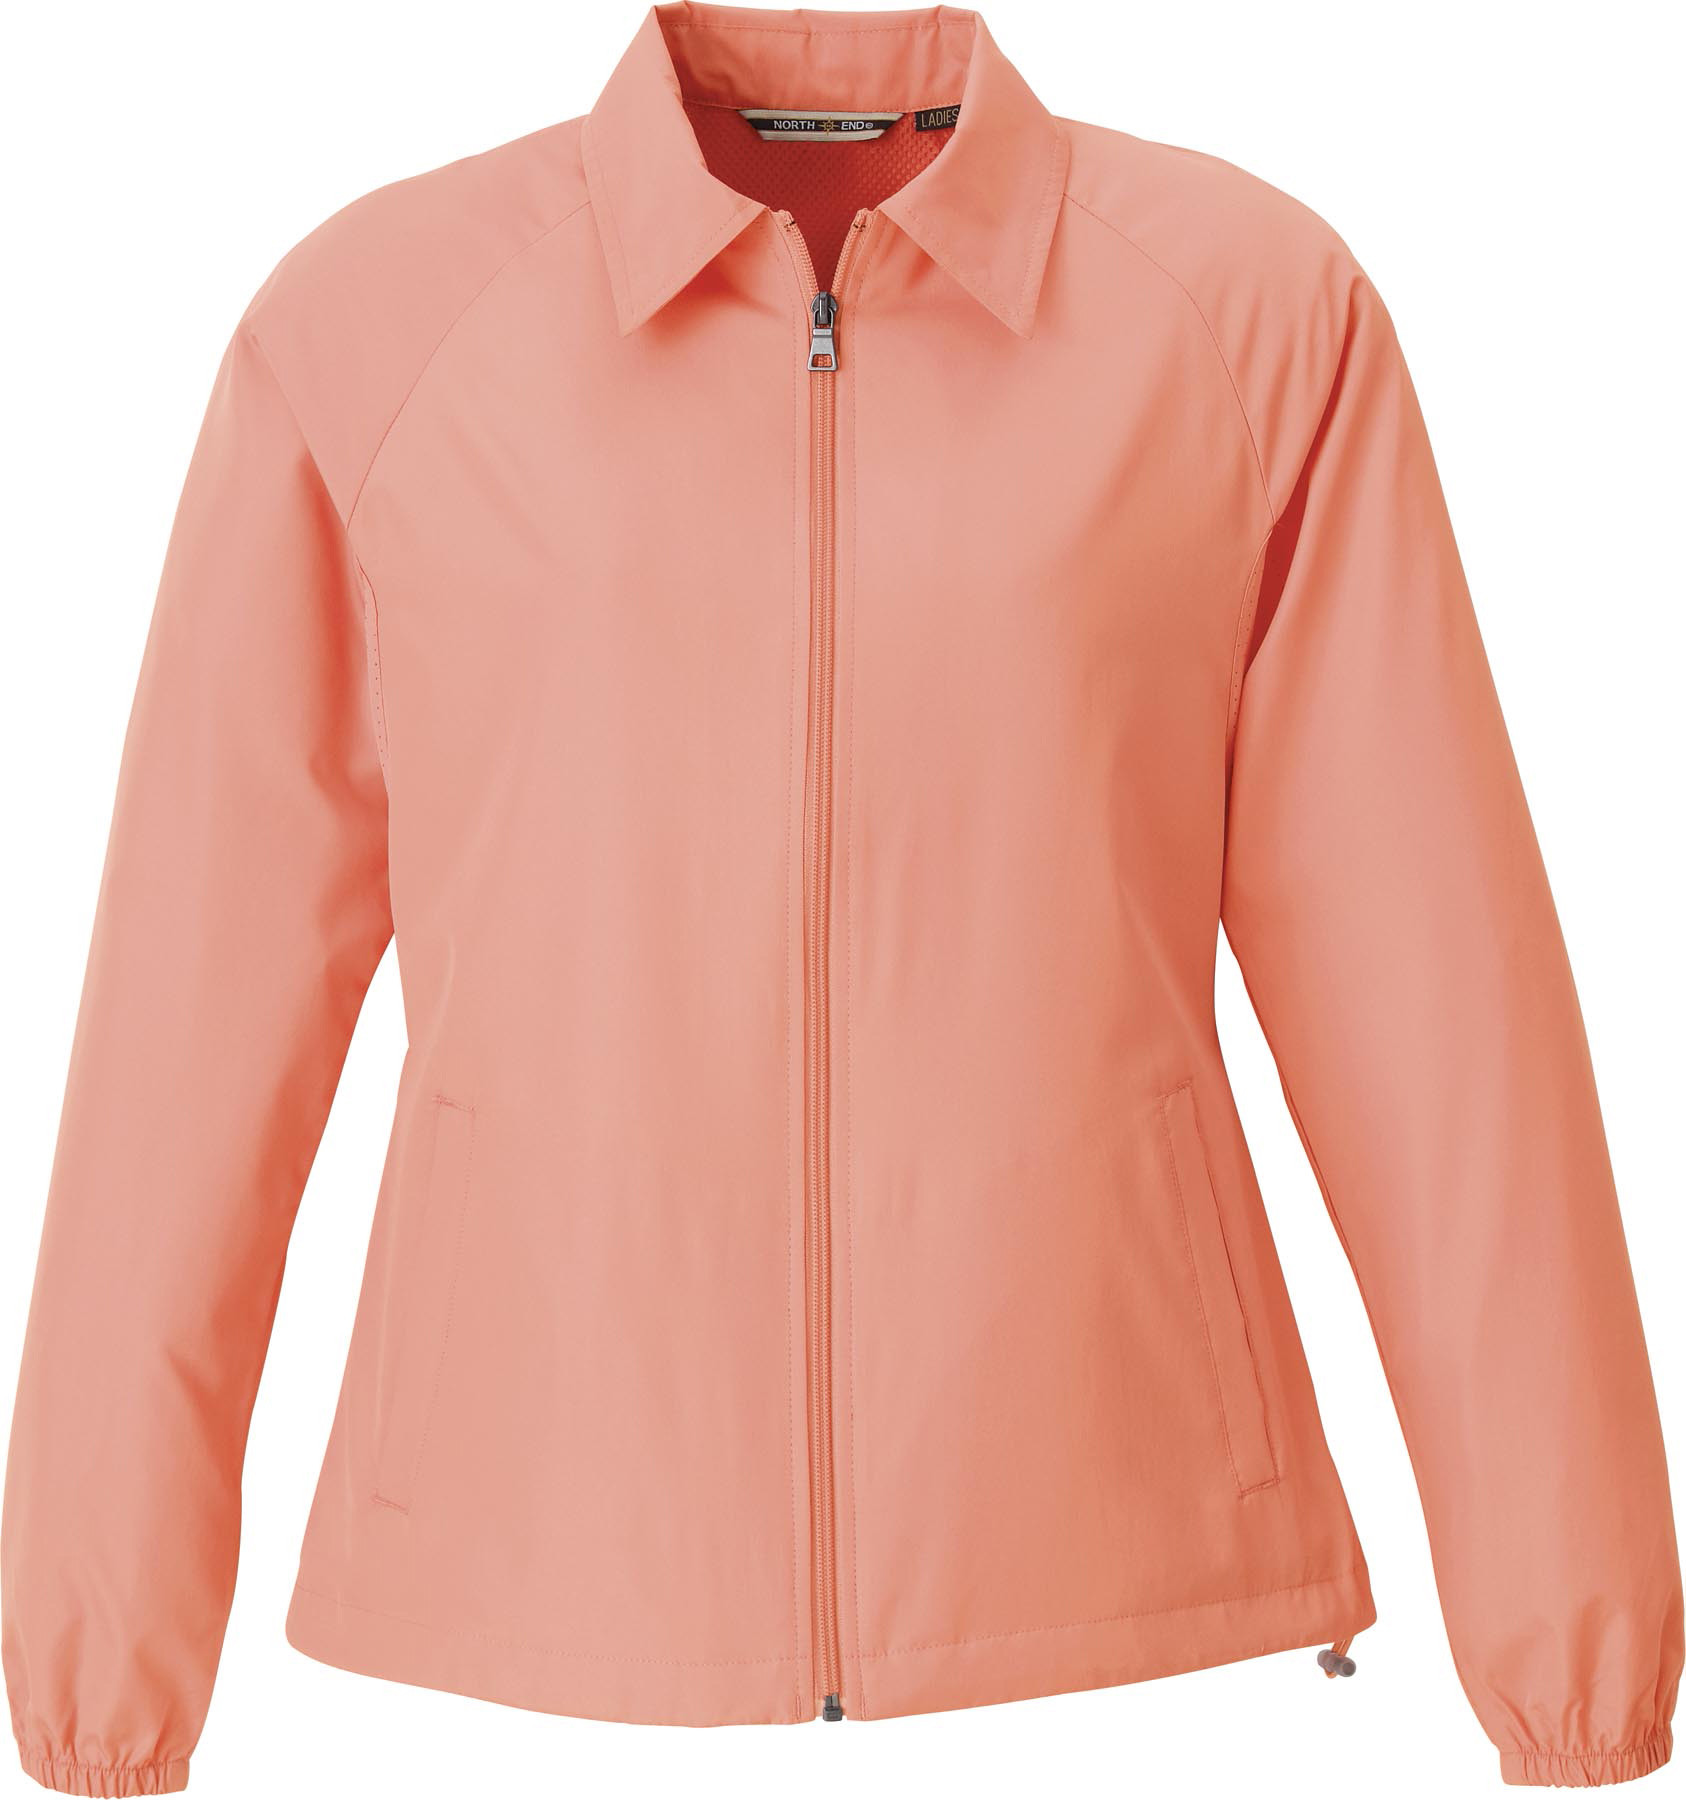 Ash City Lightweight 78055 - Ladies' Full-Zip Lightweight ...